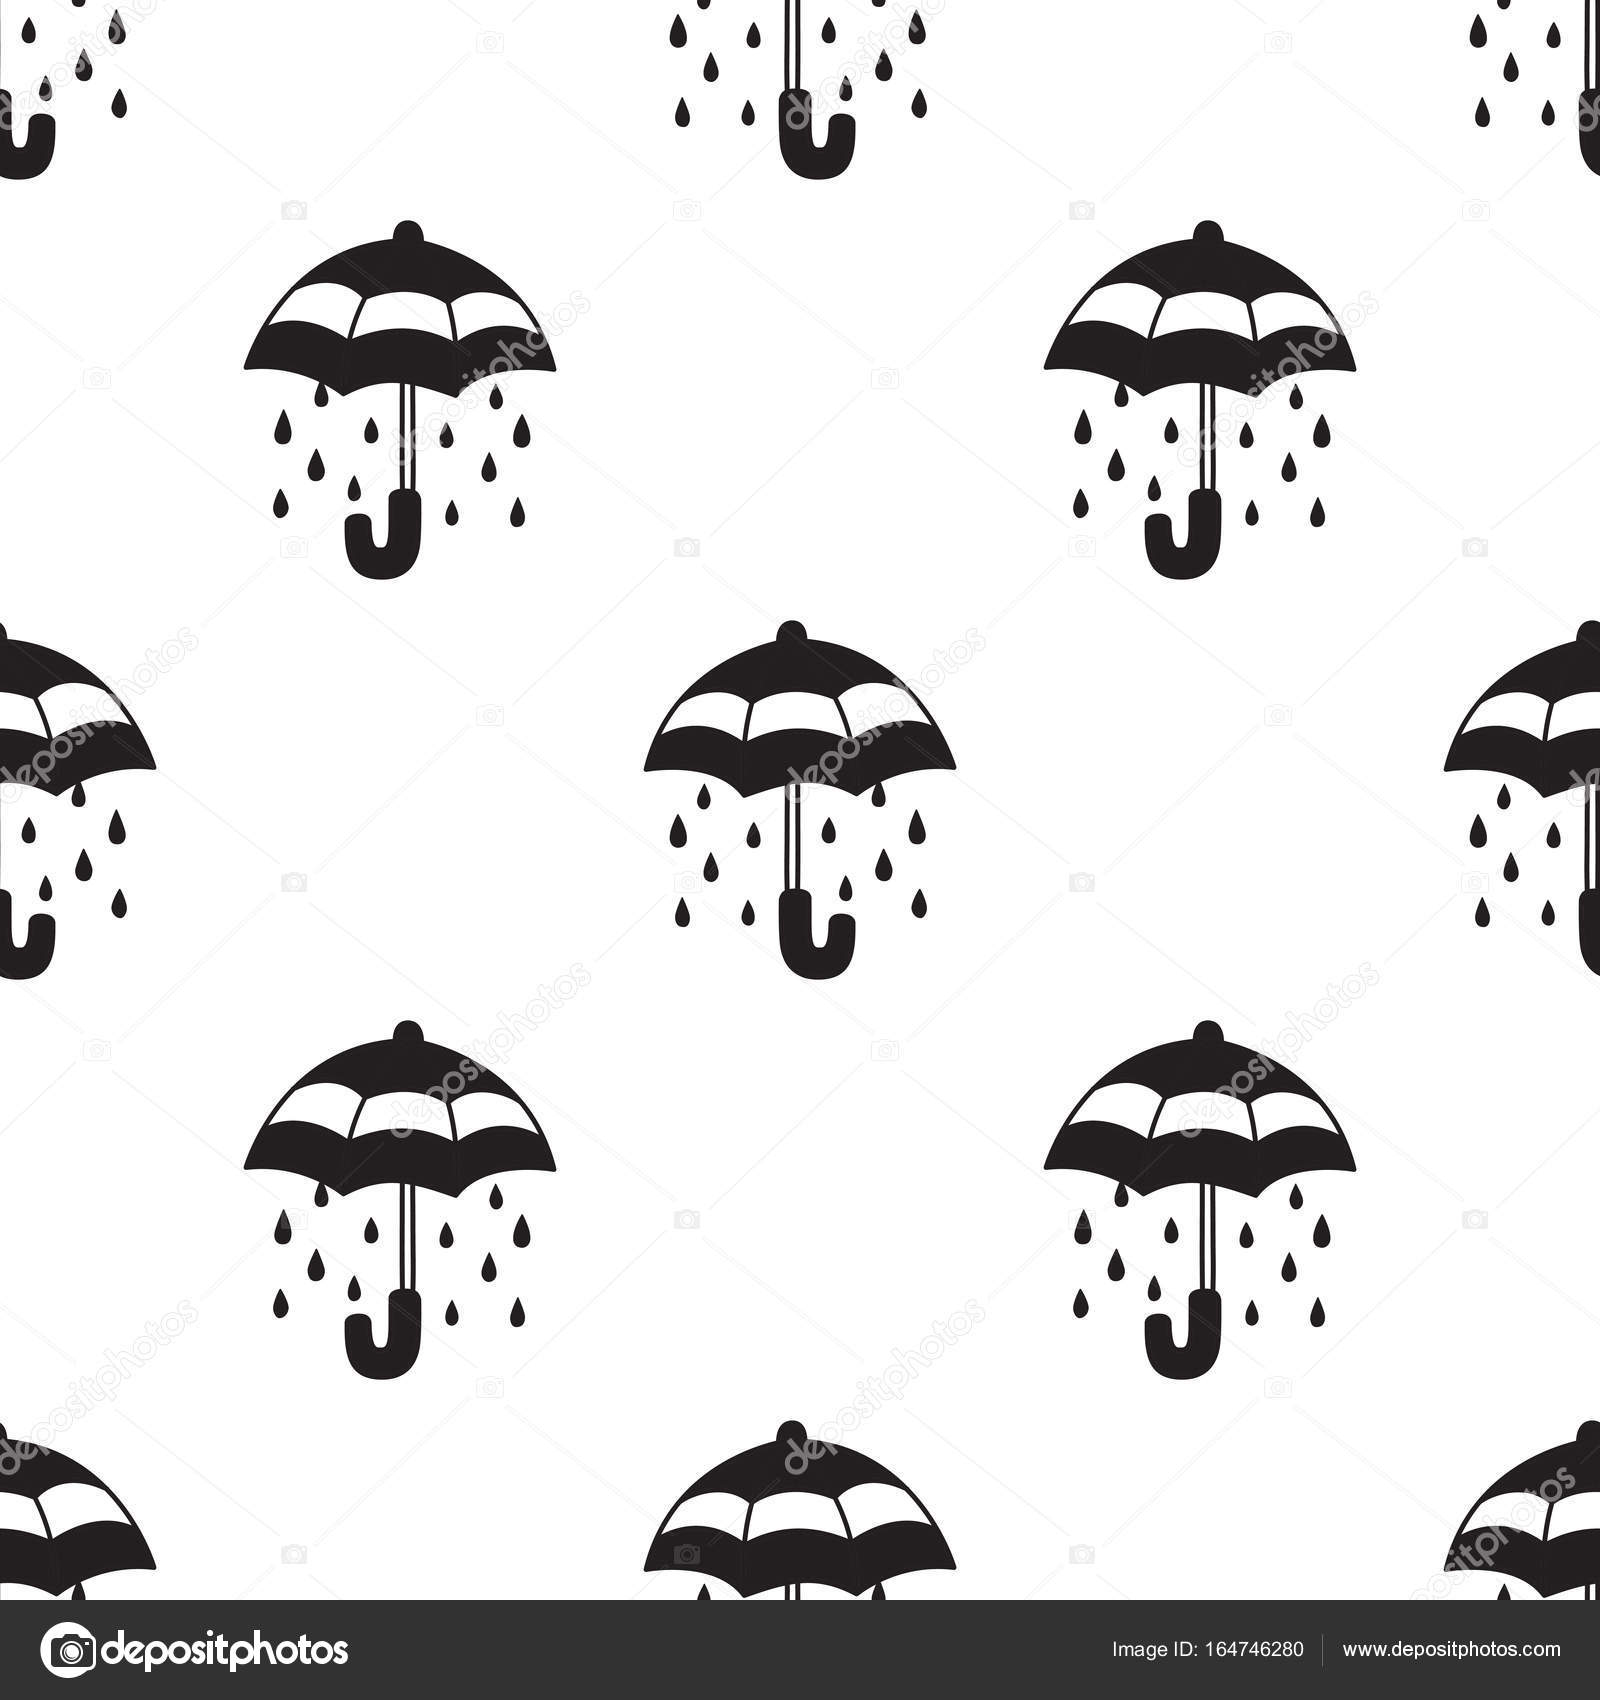 Umbrella Rain Doodle Vector Seamless Pattern Wallpaper Background White Stock